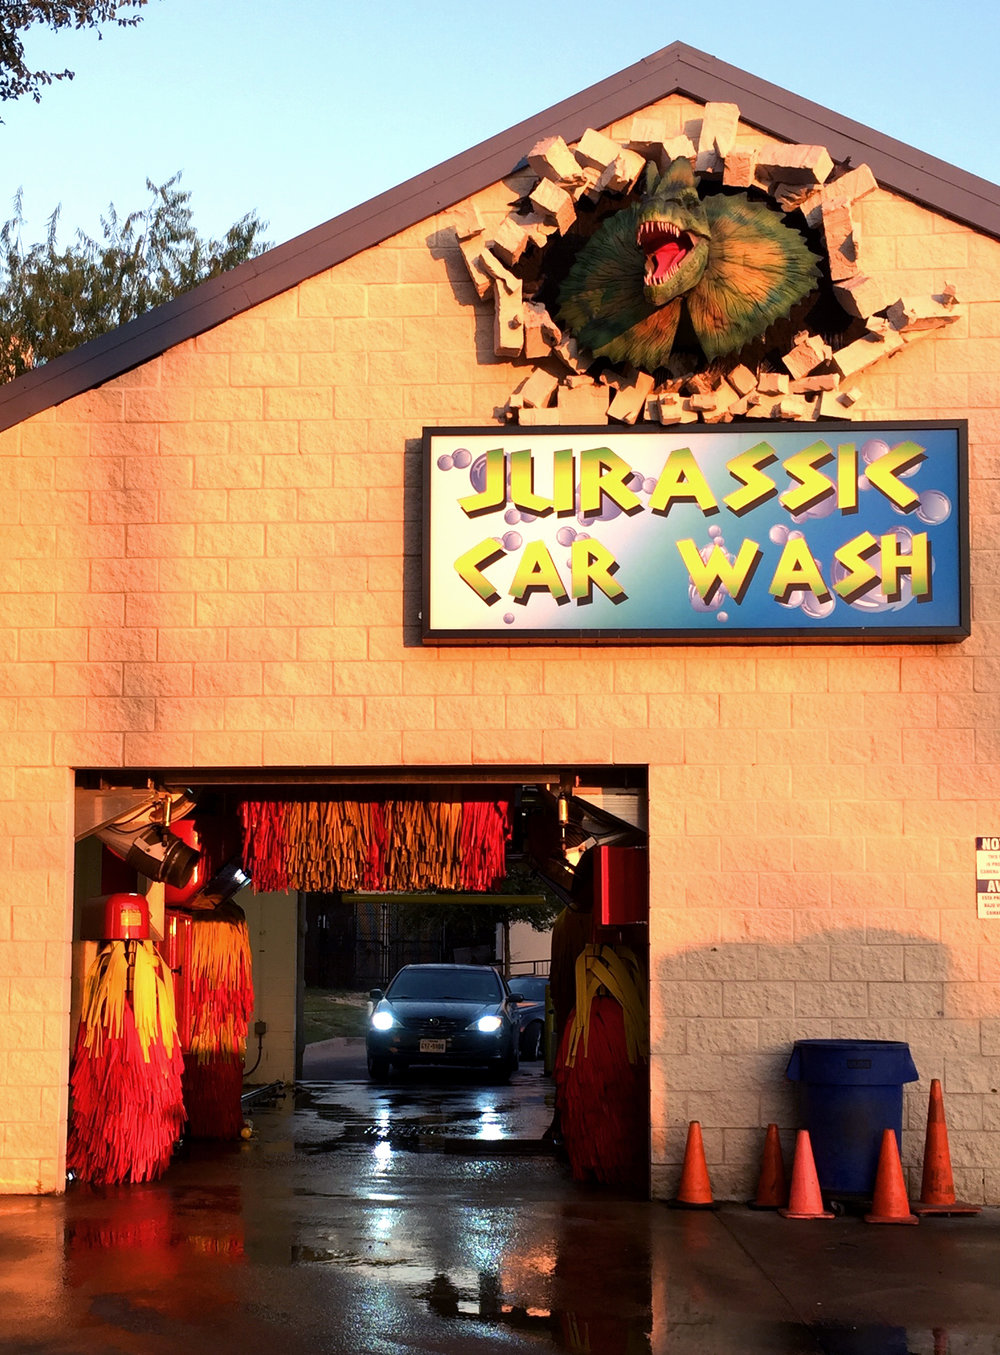 JurassicCarWash4809SouthCongress.jpg